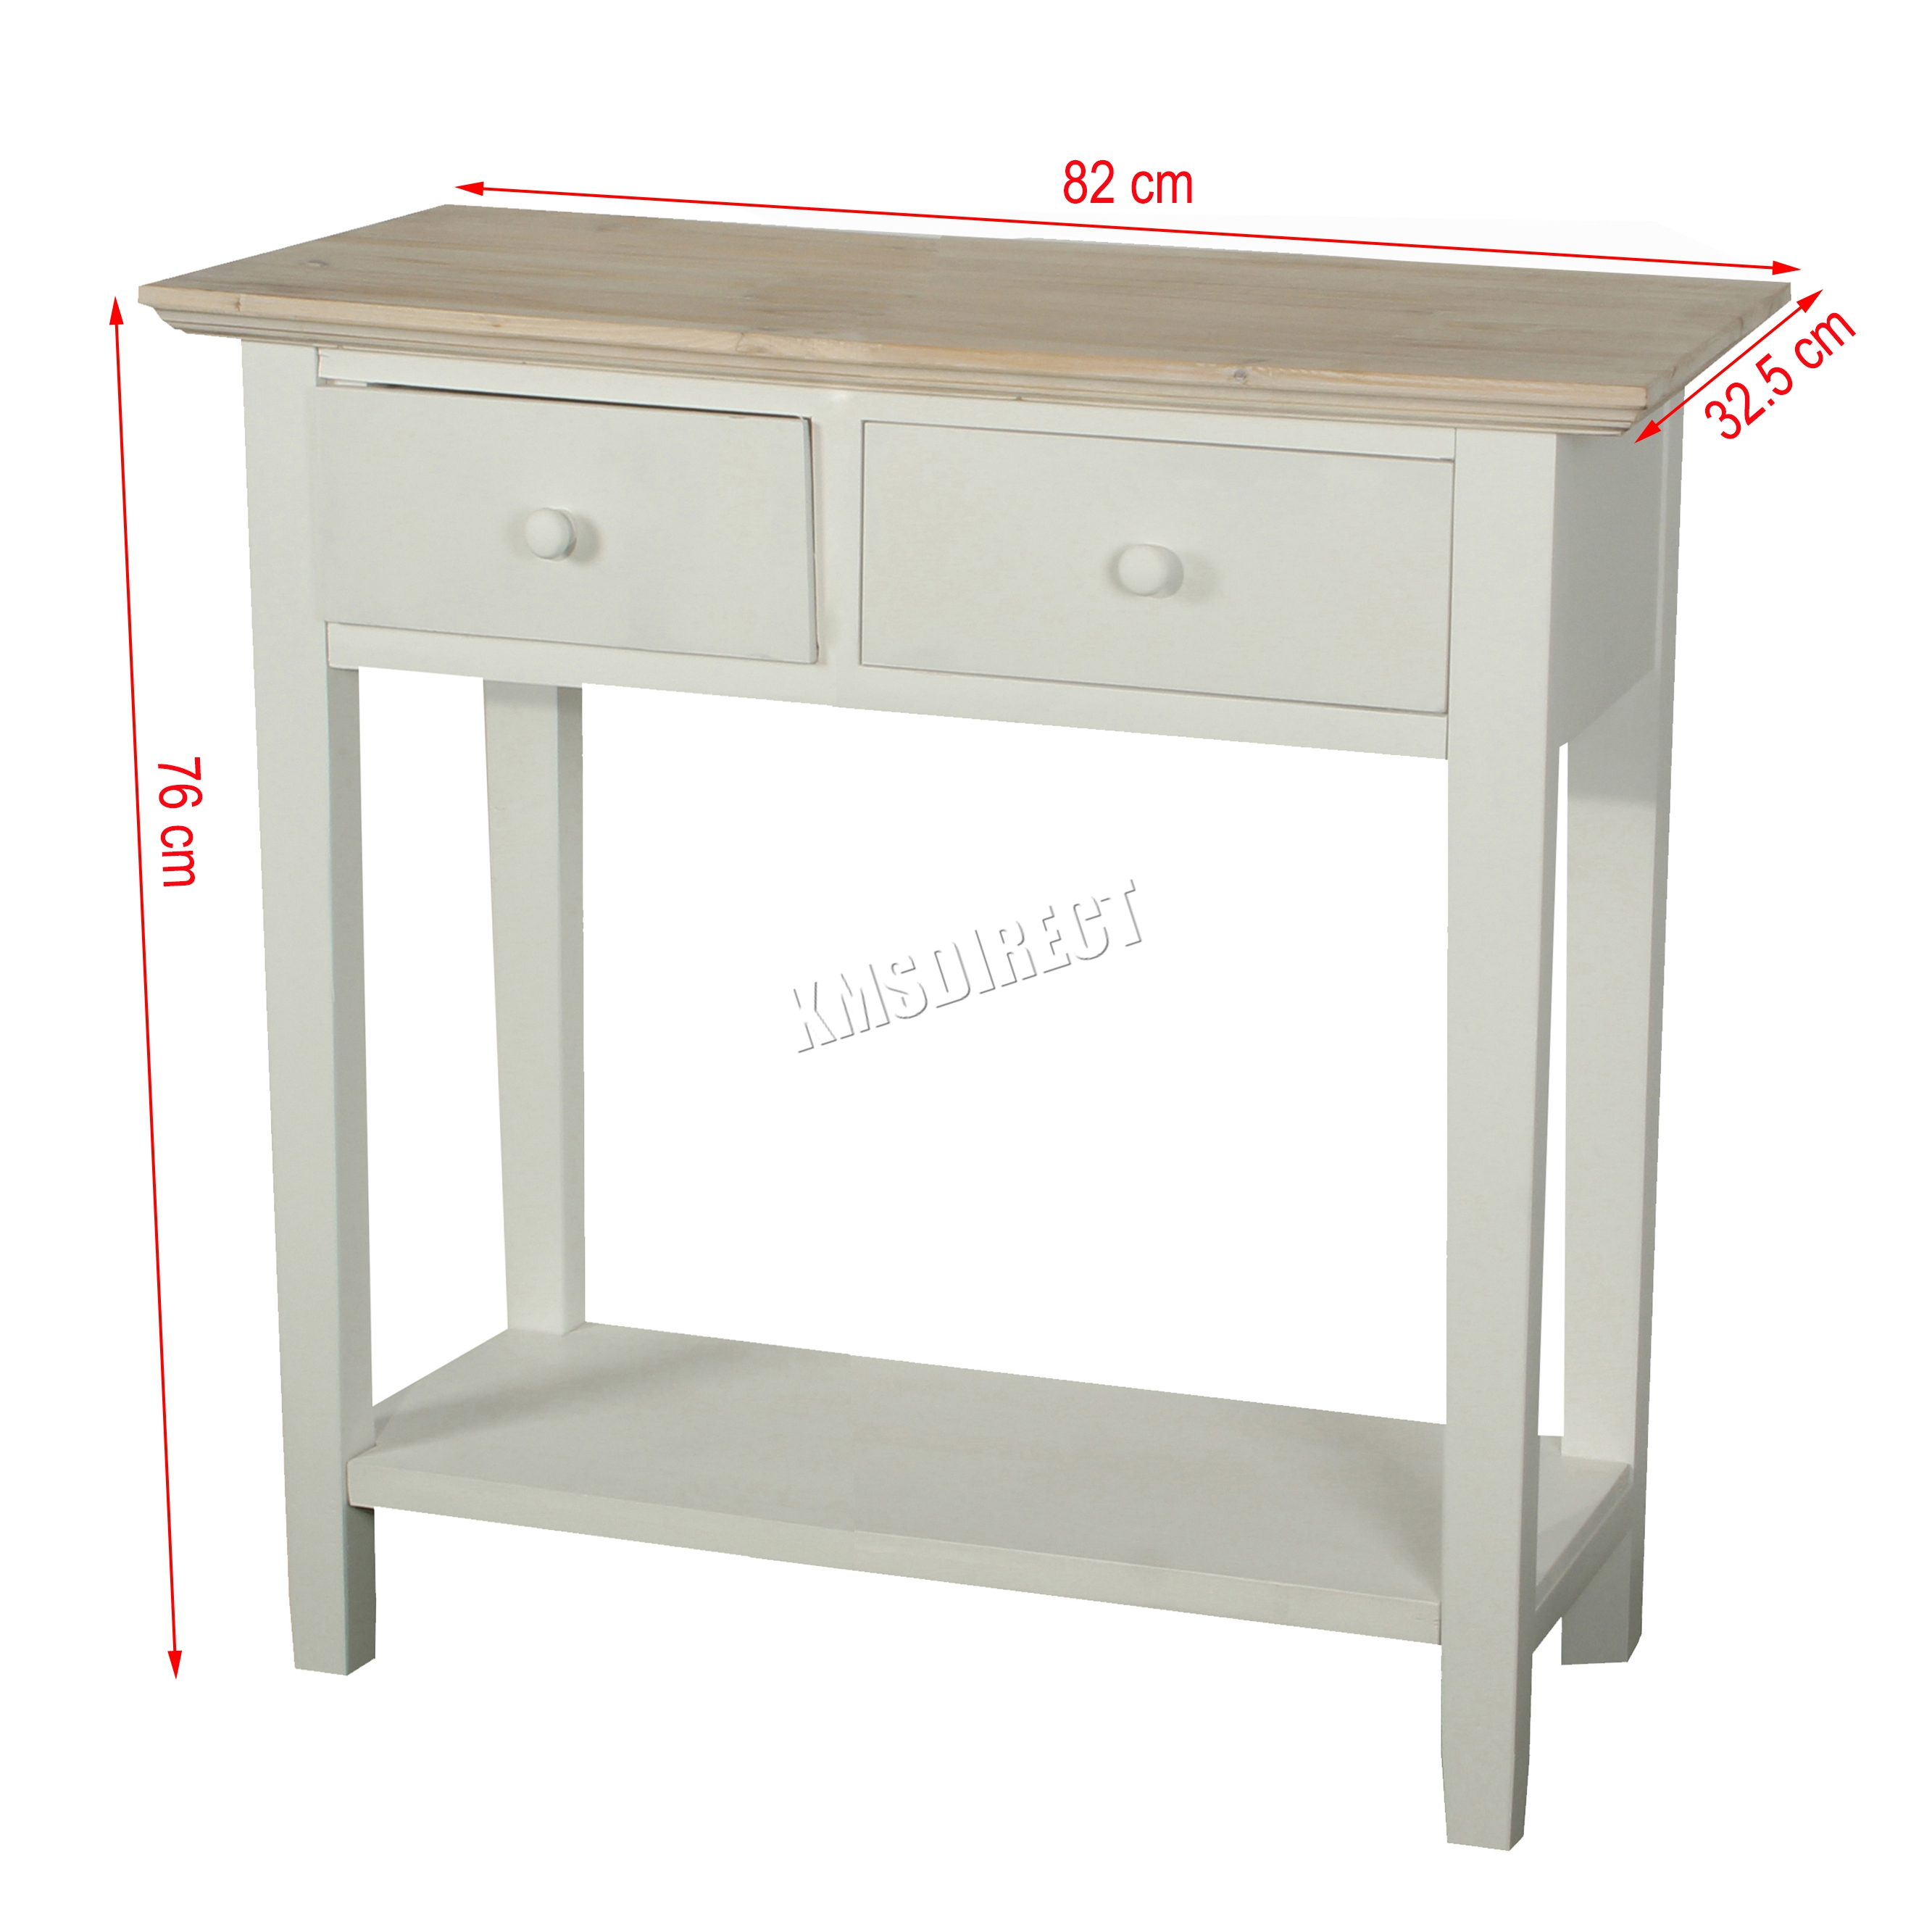 kitchen storage table cart plans foxhunter console 2 drawers wood hallway side